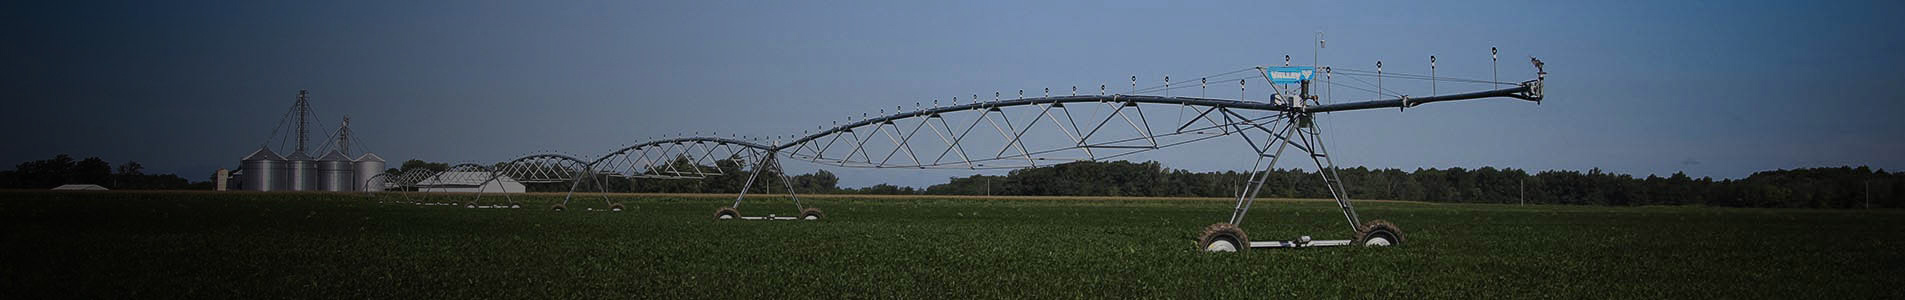 valley irrigation videos